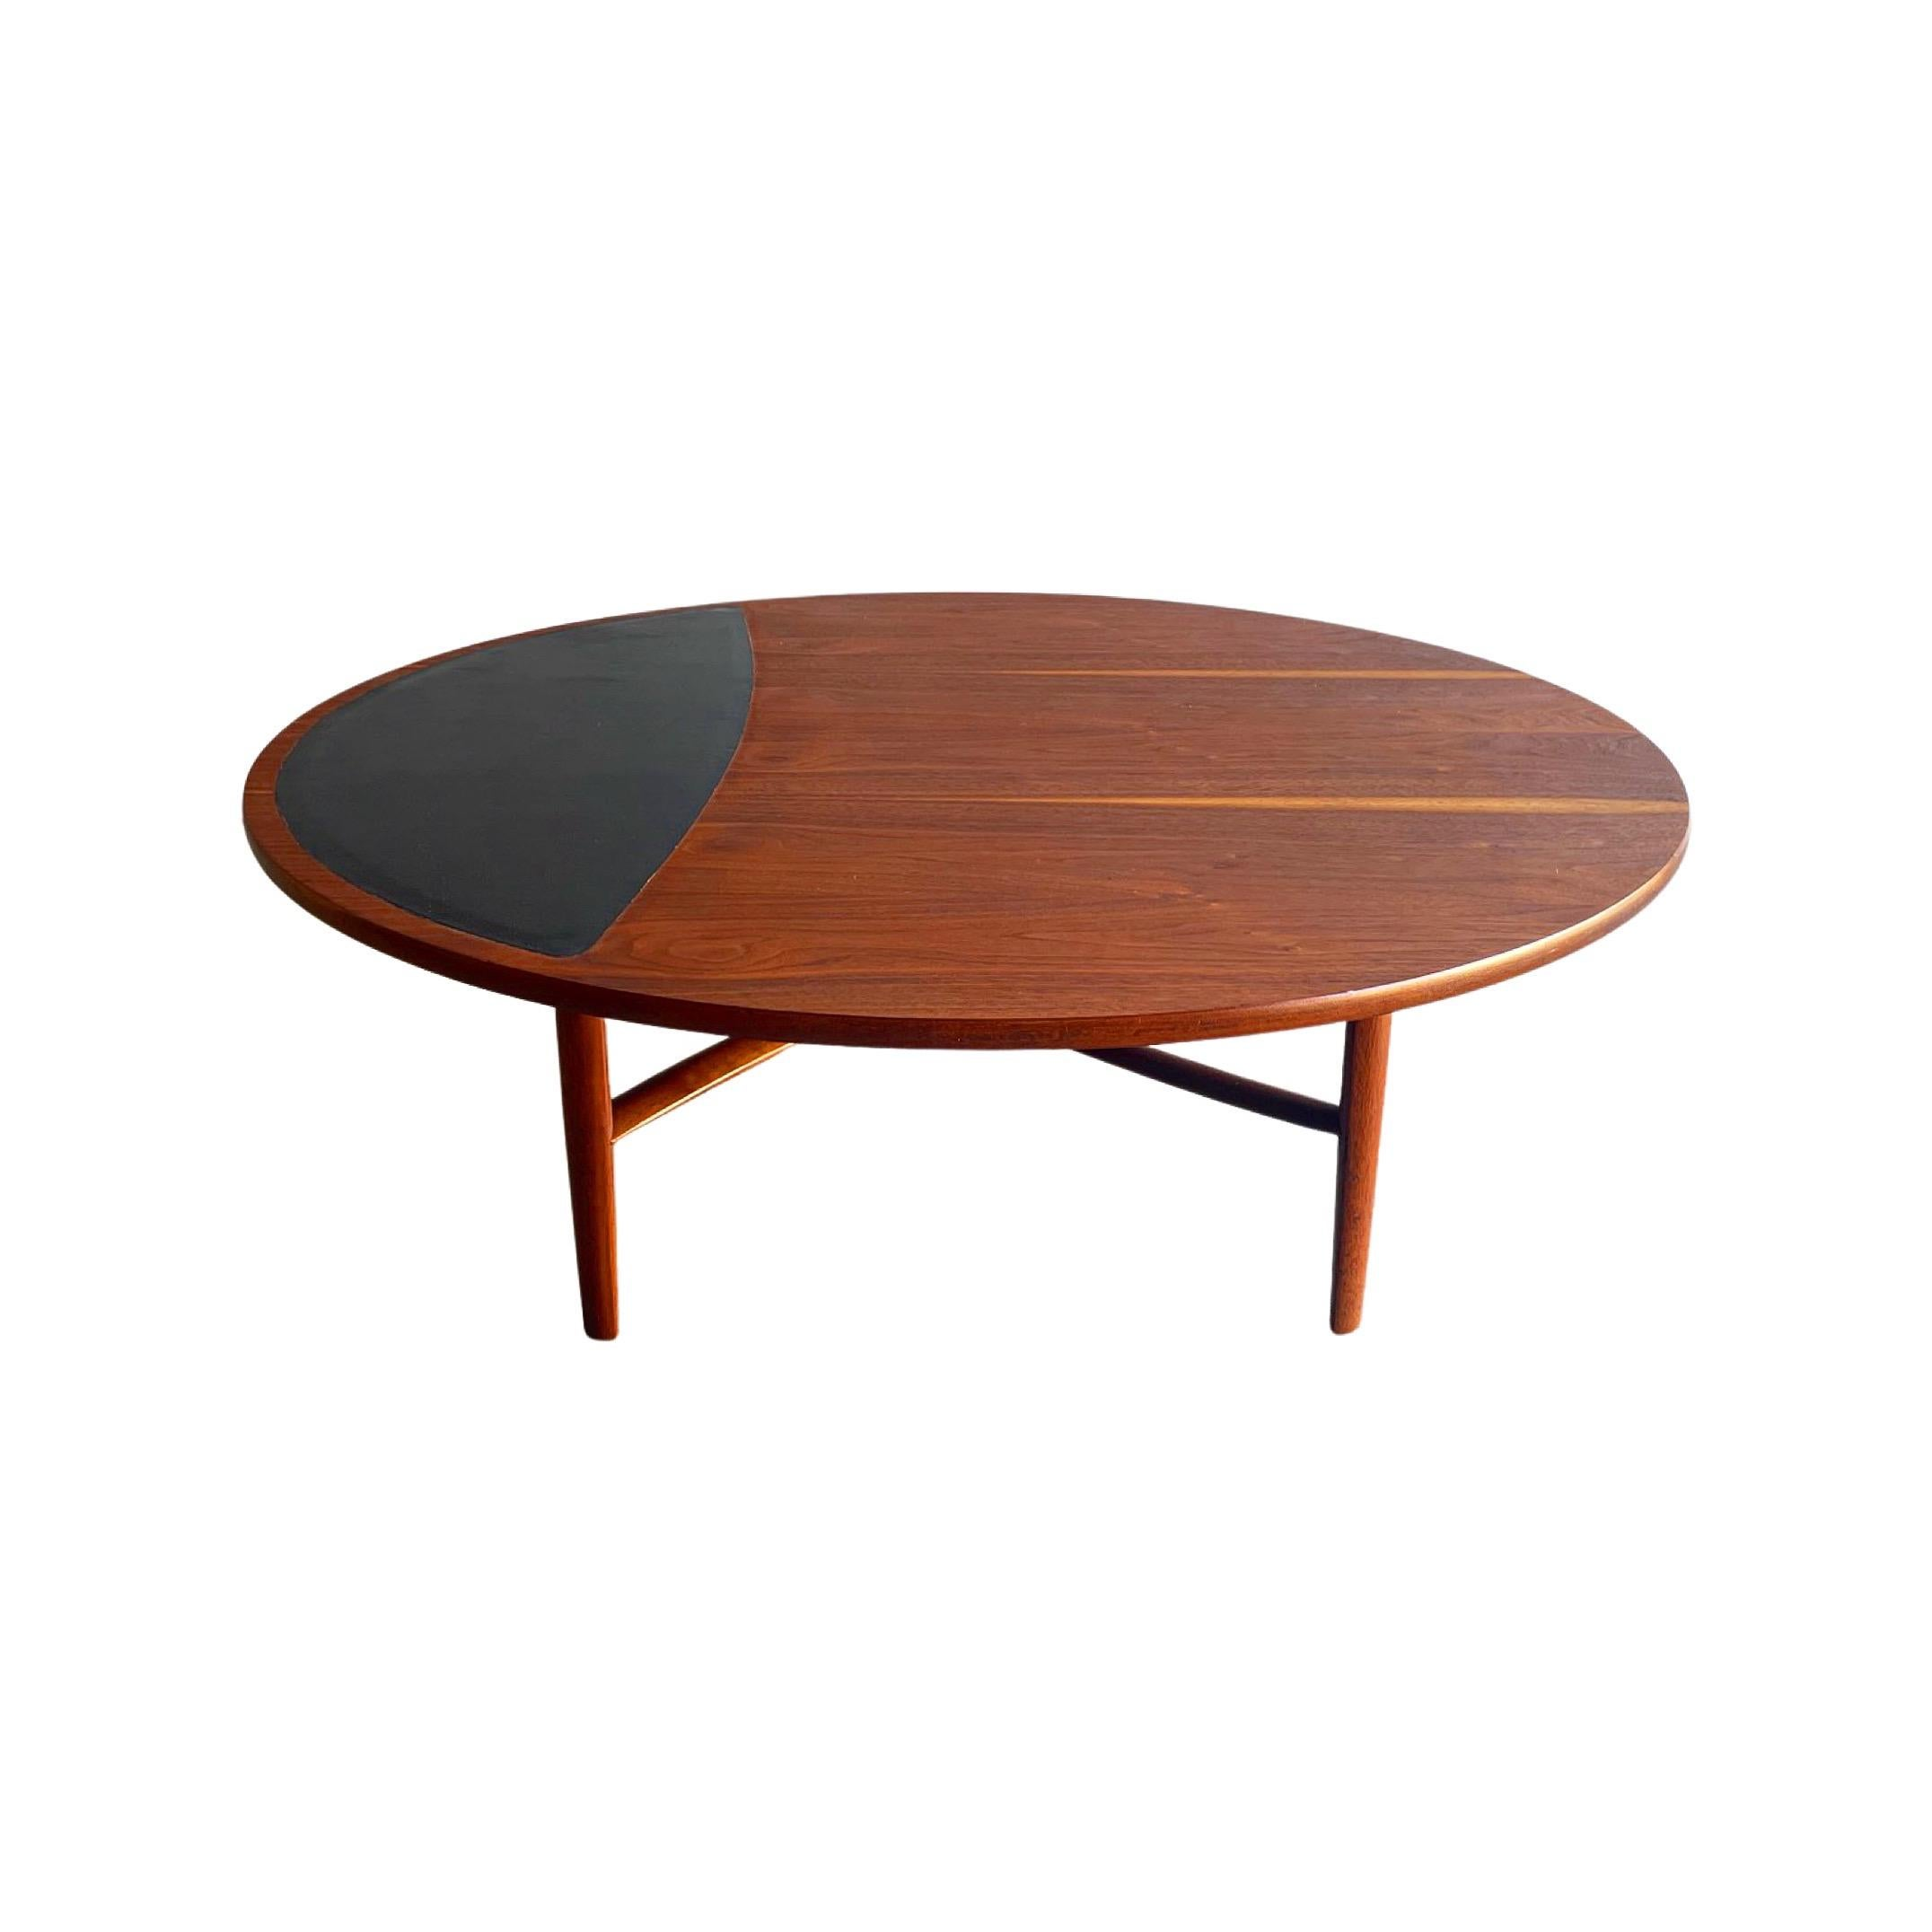 Midcentury Coffee Table in Walnut and Leather by Barney Flagg, Drexel Parallel